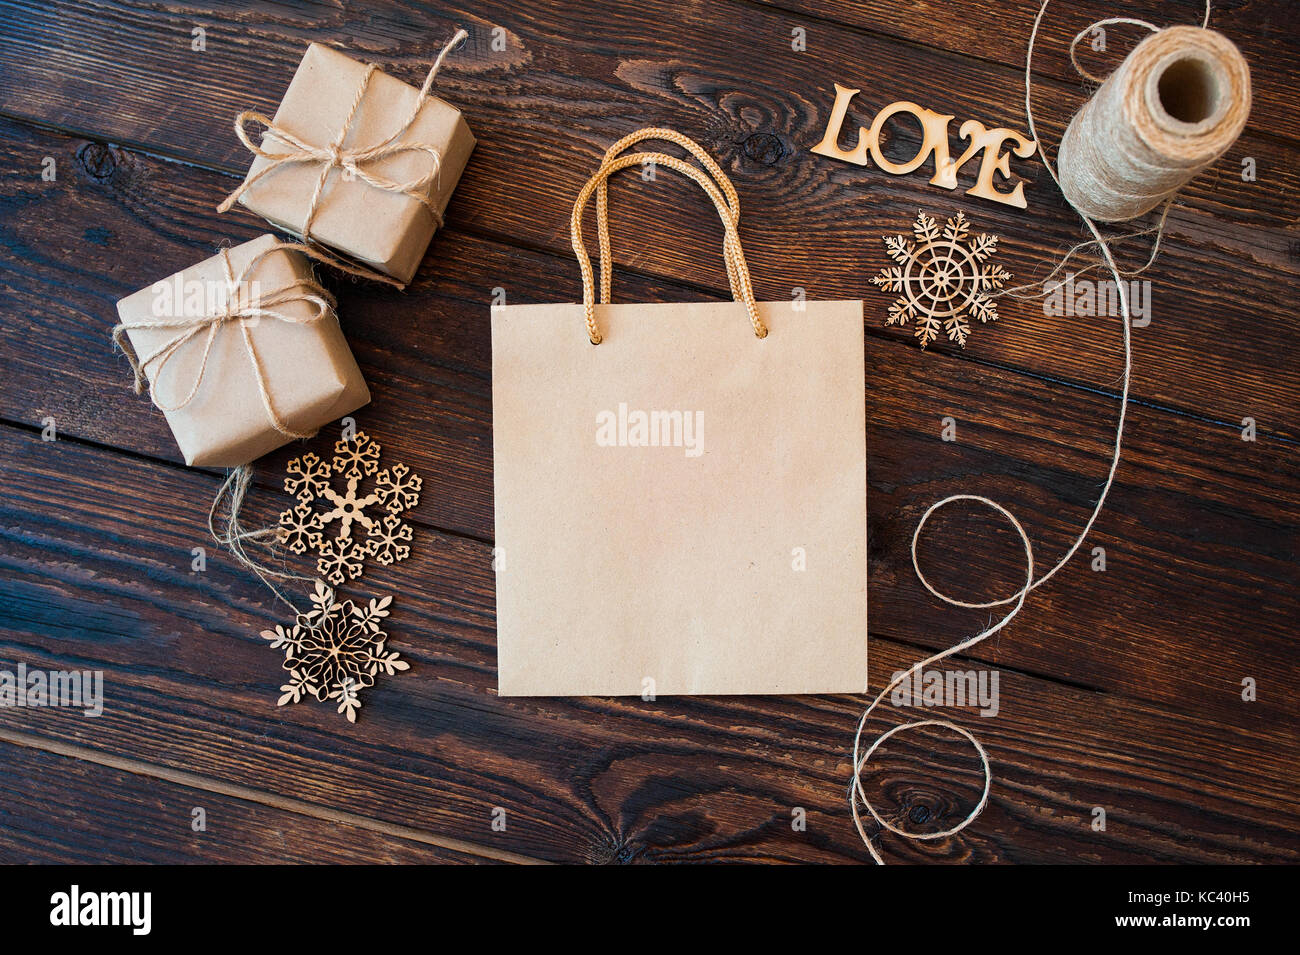 Id Card Rope Mockup Mockup Paper Bag From Kraft Paper And Christmas Gift Boxes